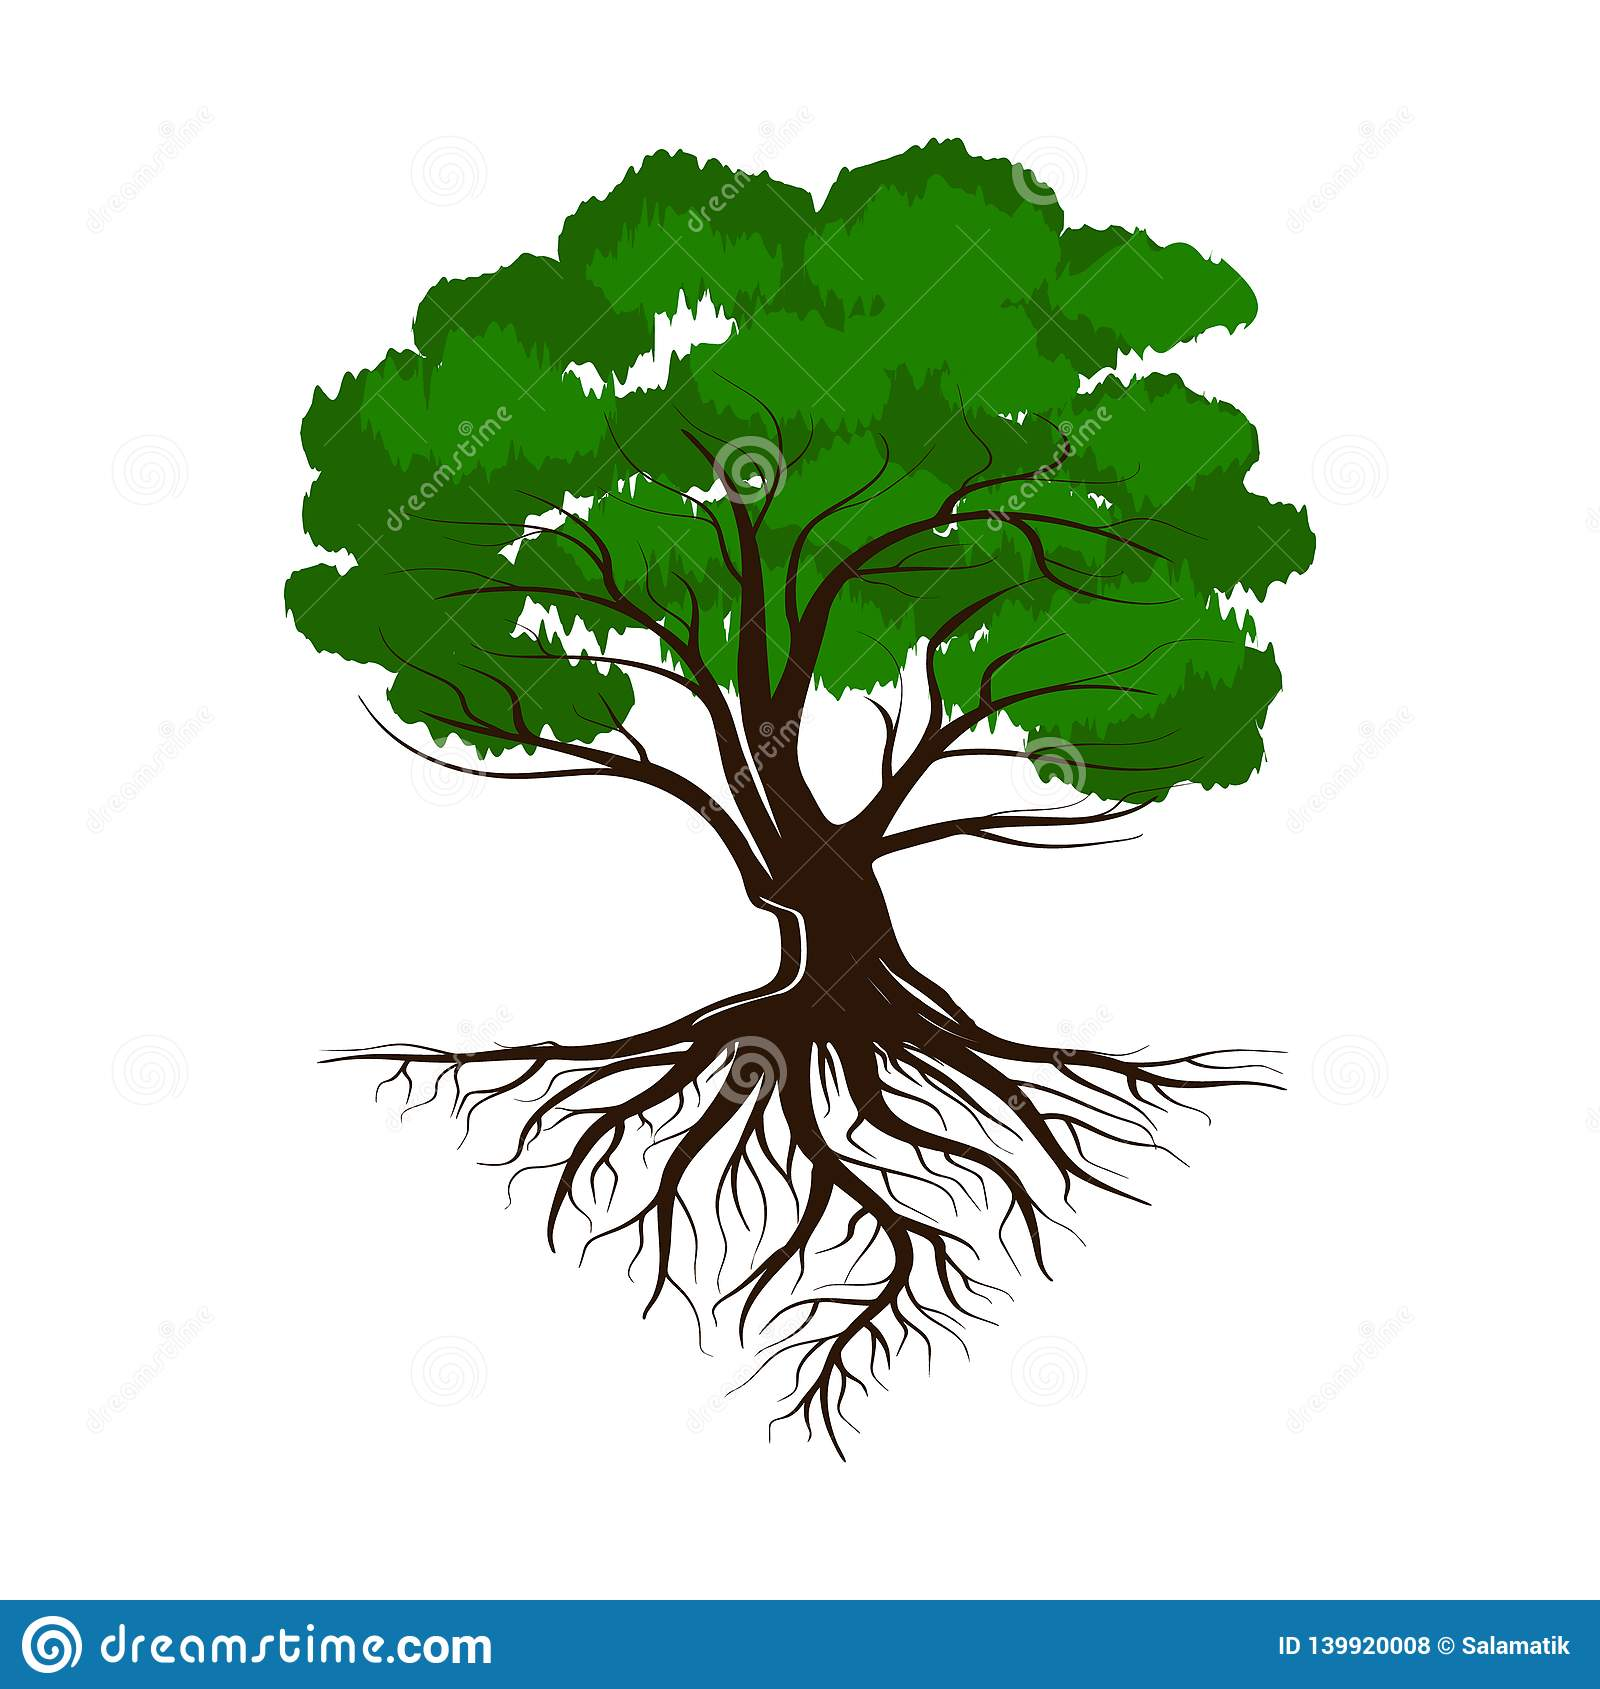 Oak Tree Roots Stock Illustrations 1 043 Oak Tree Roots Stock Illustrations Vectors Clipart Dreamstime Choose from 960+ tree roots graphic resources and download in the form of png, eps, ai or psd. https www dreamstime com oak green tree roots leaves vector illustration icon isolated white background life image139920008